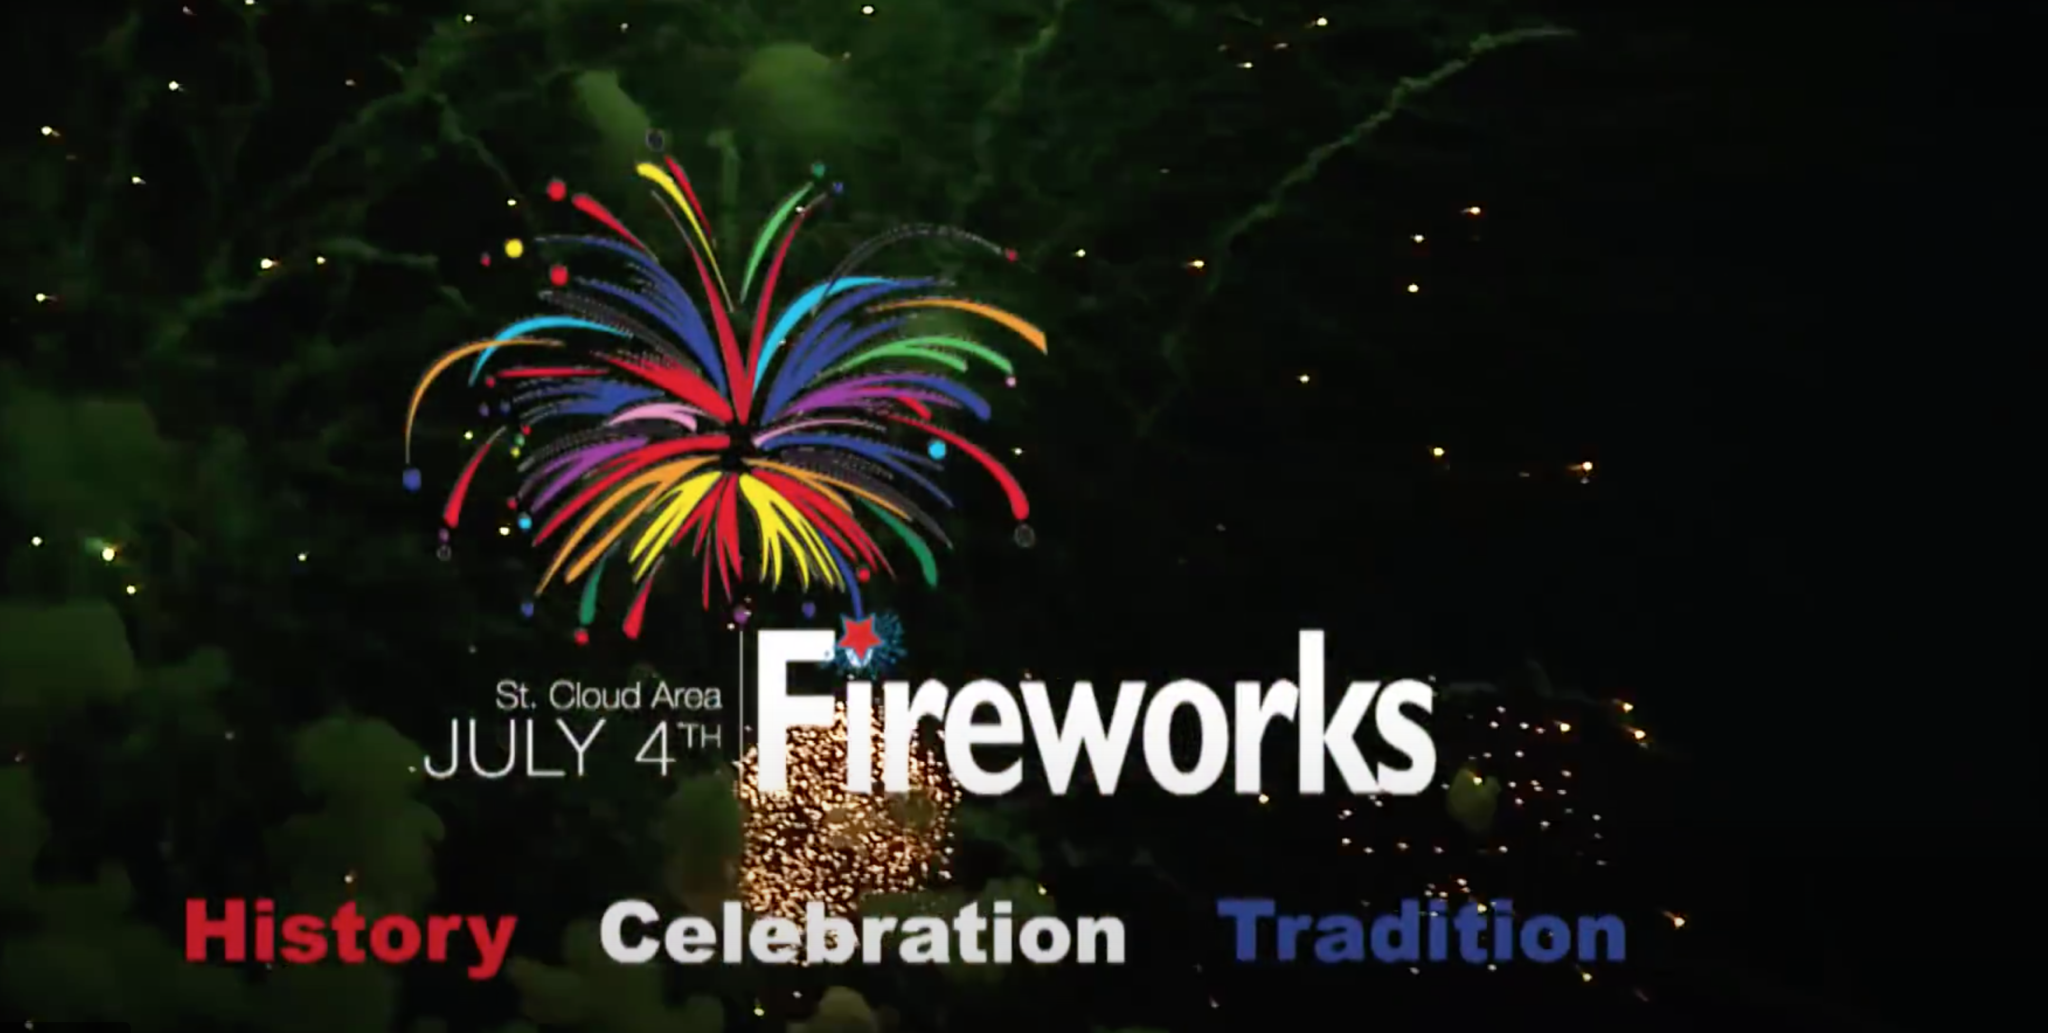 St. Cloud Area July 4th Fireworks Illuminates New Honorary Commissioner